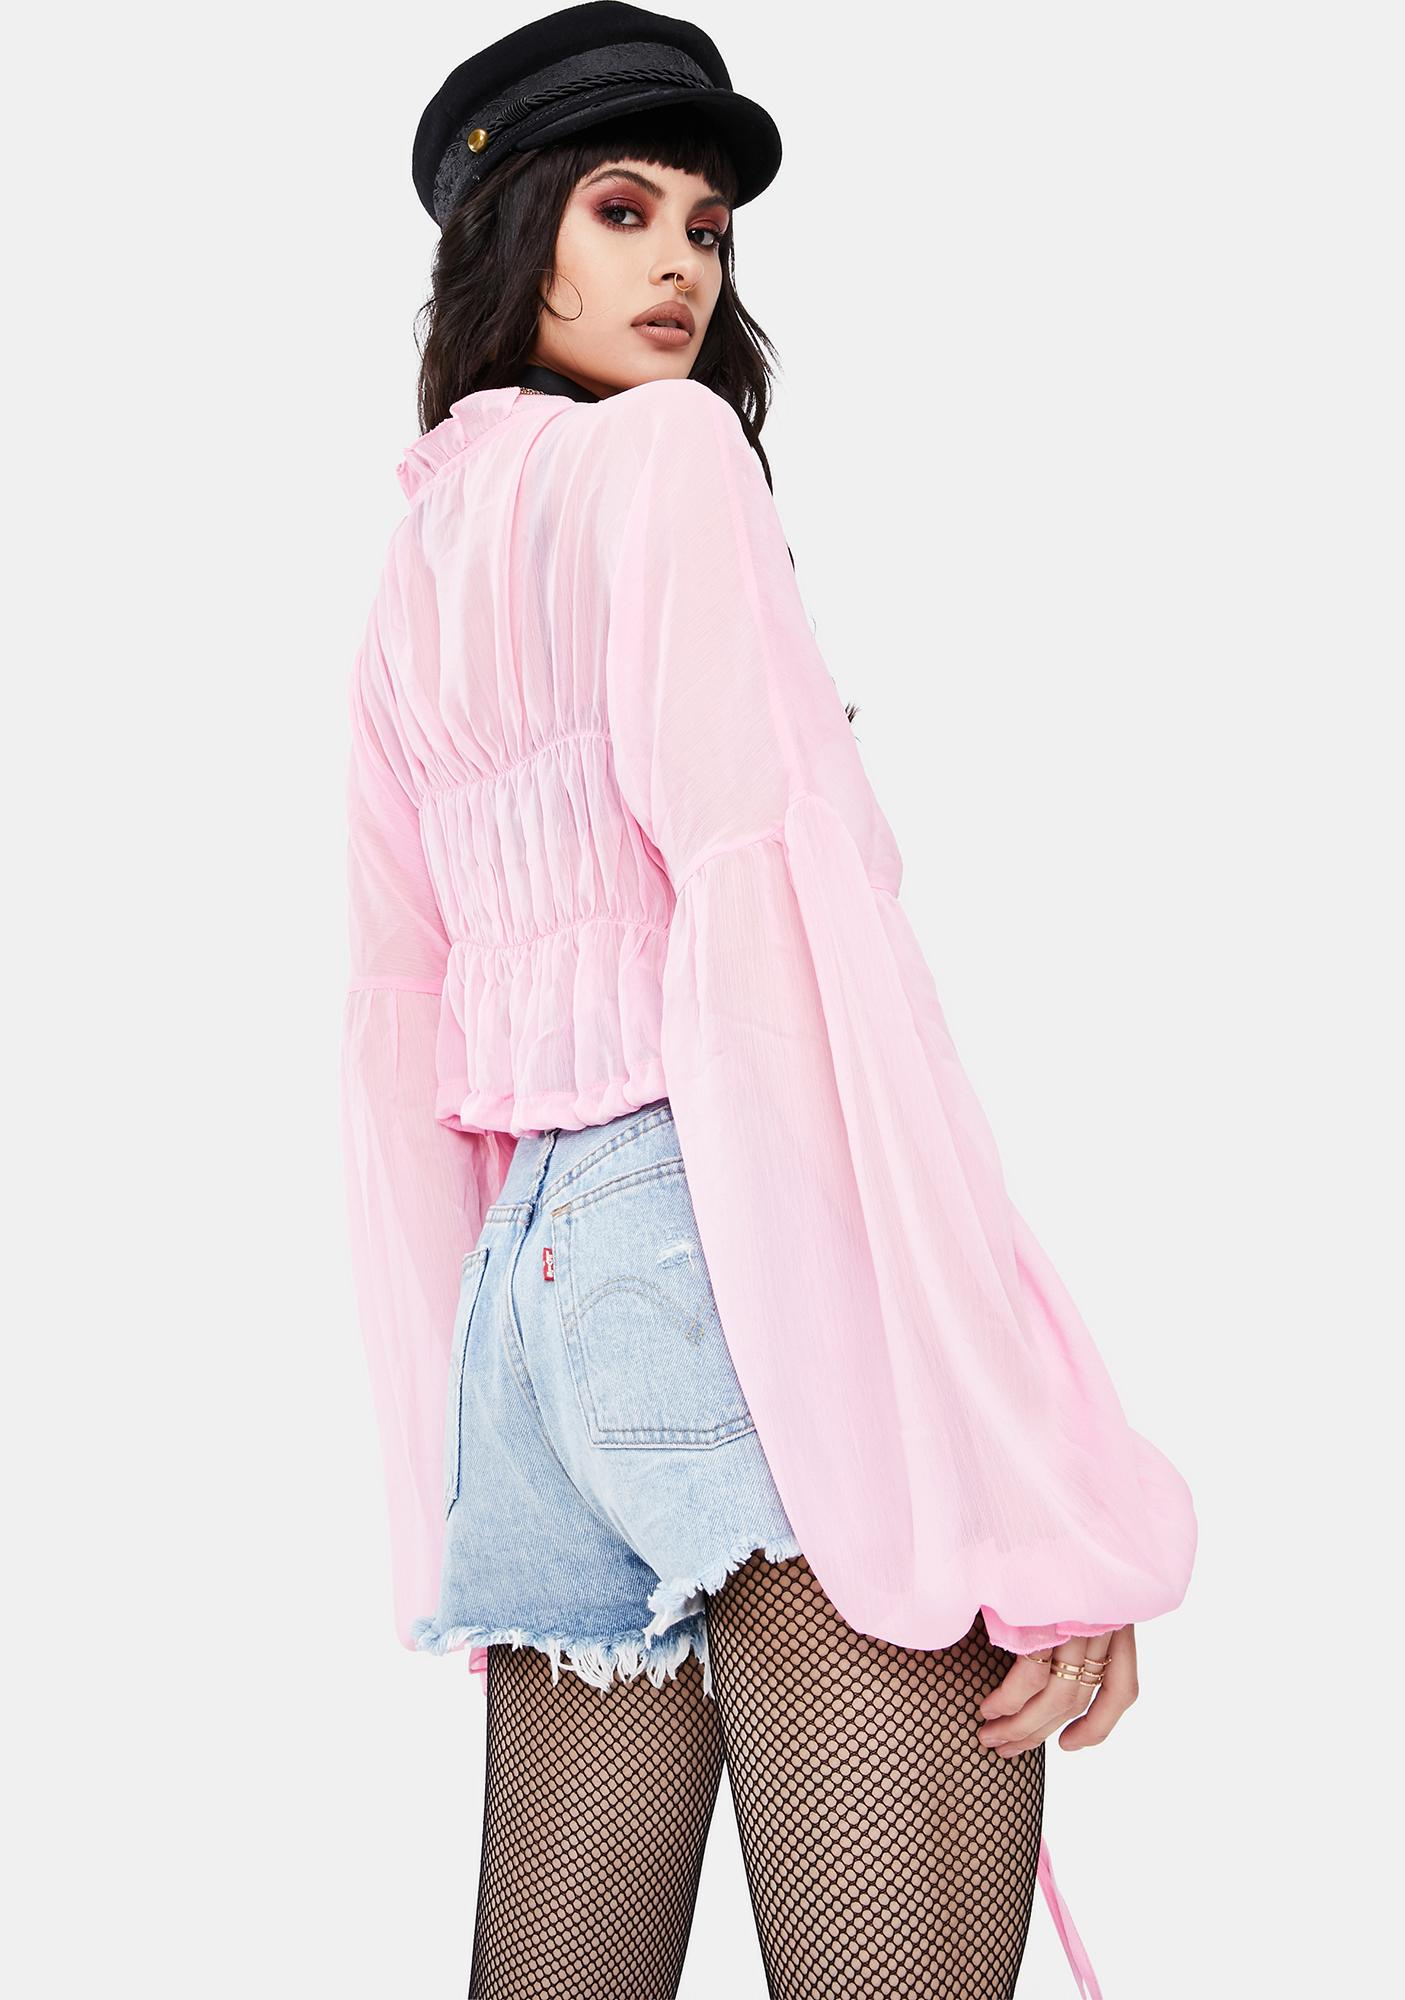 SNDYS. THE LABEL Baby Pink Bali Ruffle Top